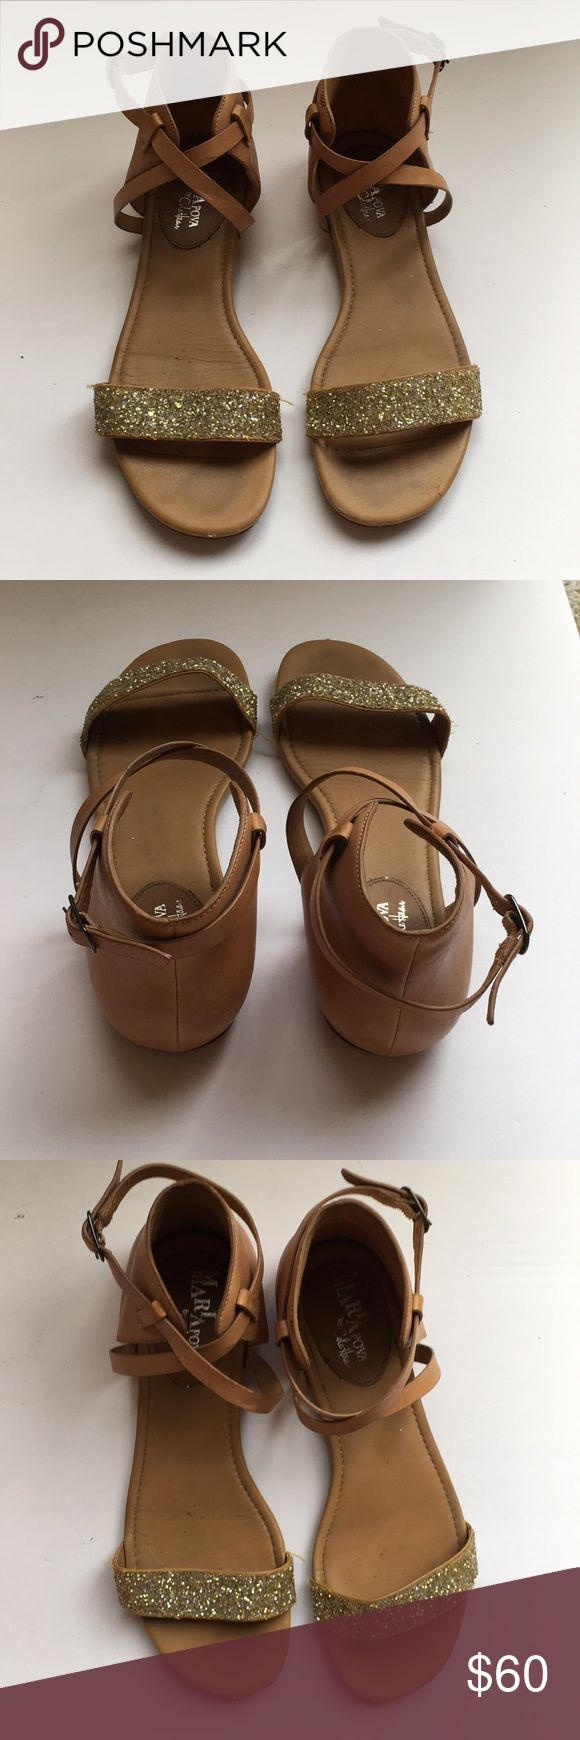 Cole Haan Nike Air Catalina leather sandals Love these sandals, very comfortable, but i'm cleaning out my closet because I'm moving!  Size 8, tan leather with glitter   A super-elegant way to stay comfortable, the Cole Haan Air Catalina Flat Sandals are a gem!  Leather upper. Adjustable buckle closure at ankle.  Toe strap and crisscrossing vamp straps contrast.  Cushioned with NIKE AIR technology.  Leather lining and footbed.  Leather outsole with rubber heel and forepart.  By Maria…